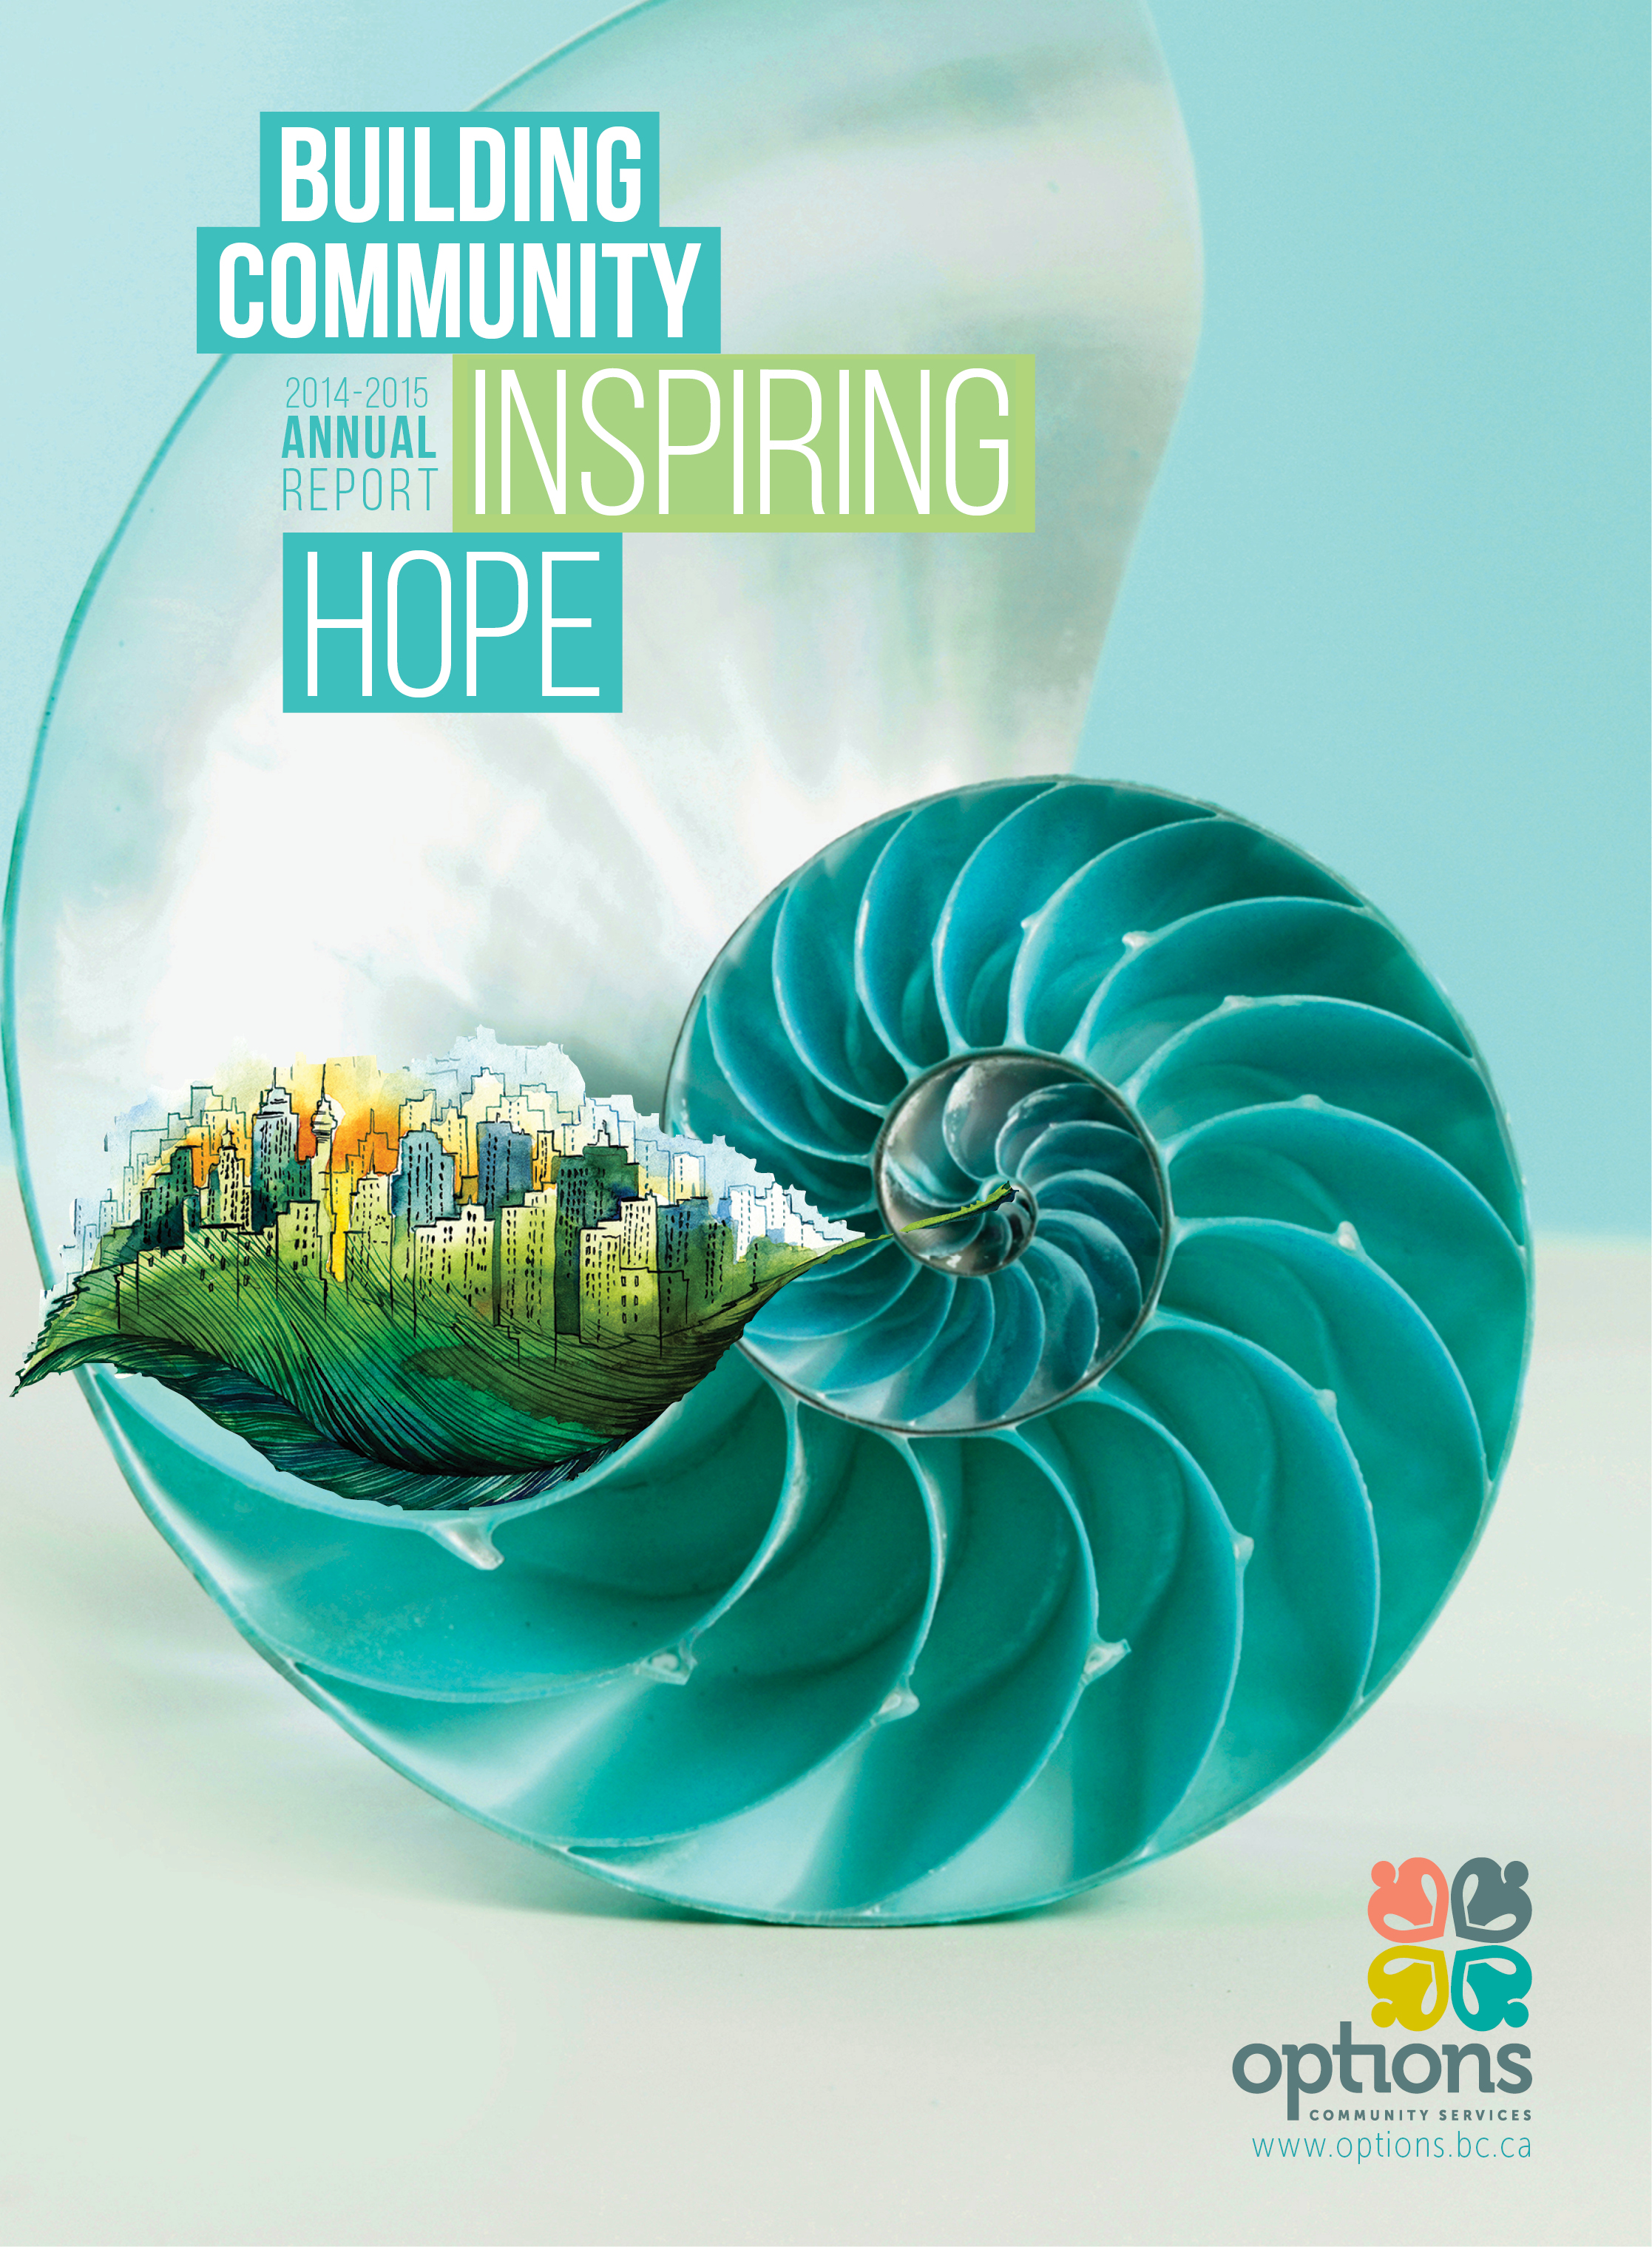 2014-15 Annual report cover showing a city scape insite a nautilus shell